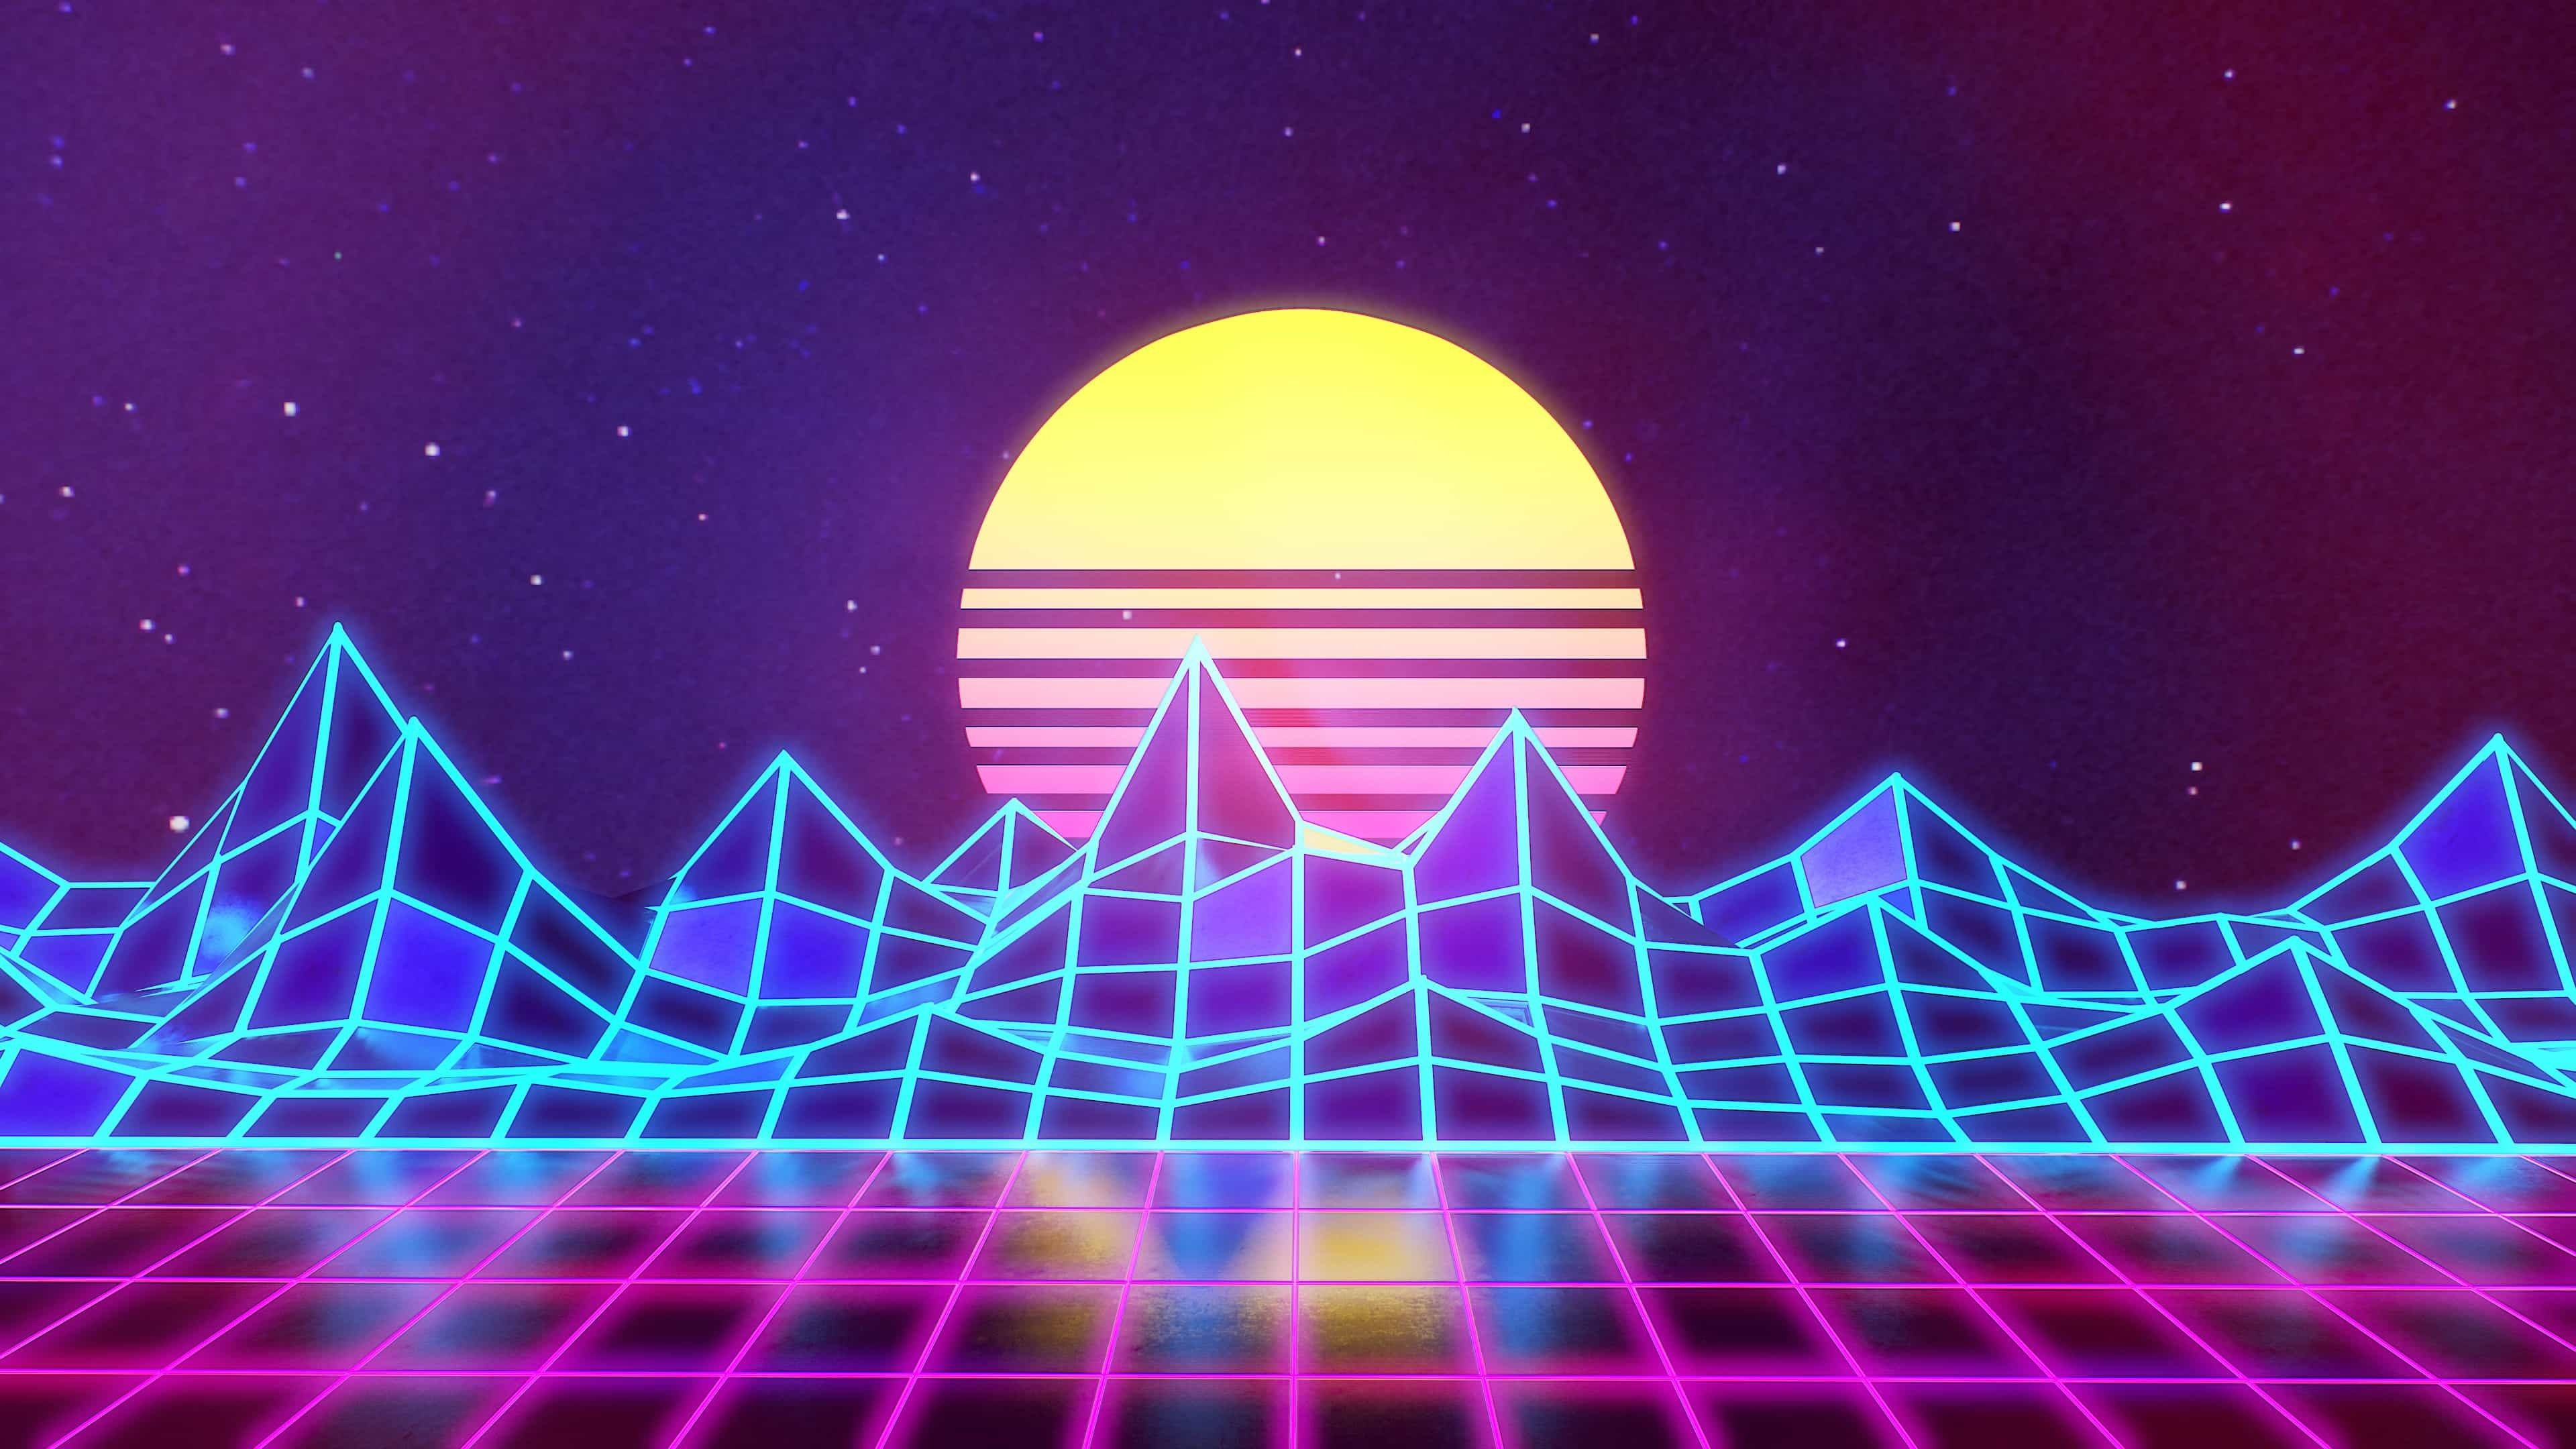 Retro Wave Wallpapers   Top Retro Wave Backgrounds 3840x2160